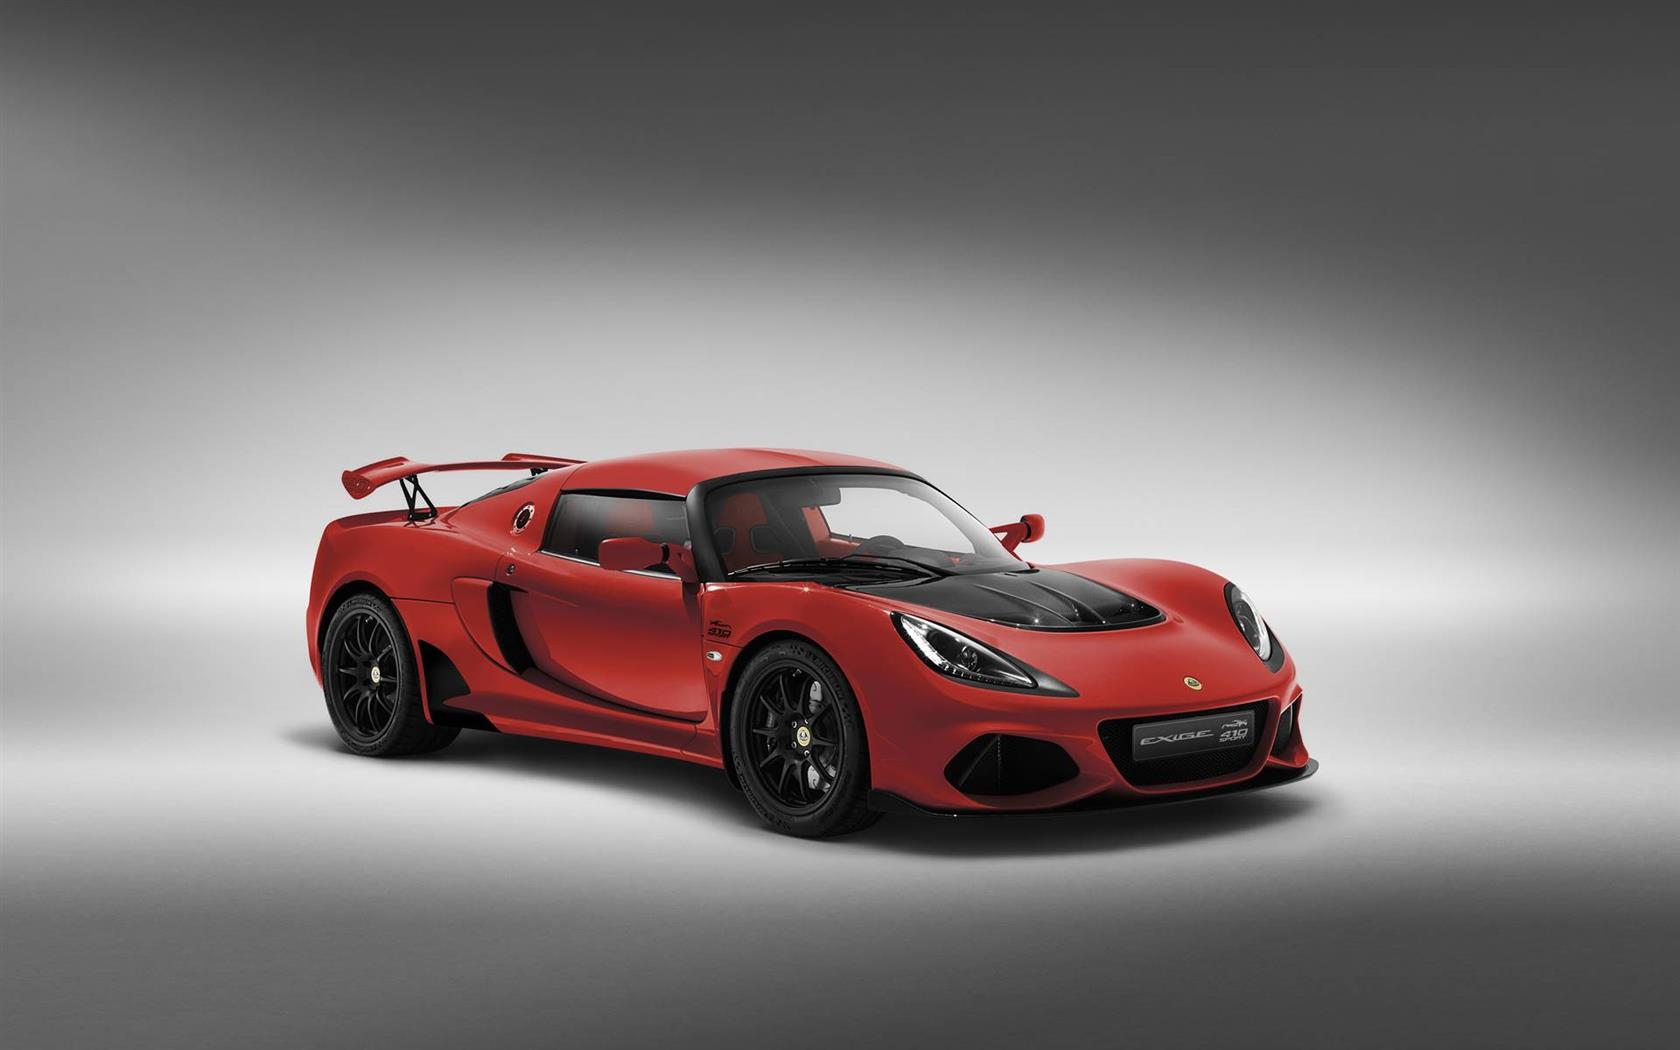 2020 Lotus Exige Sport 410 20th Anniversary